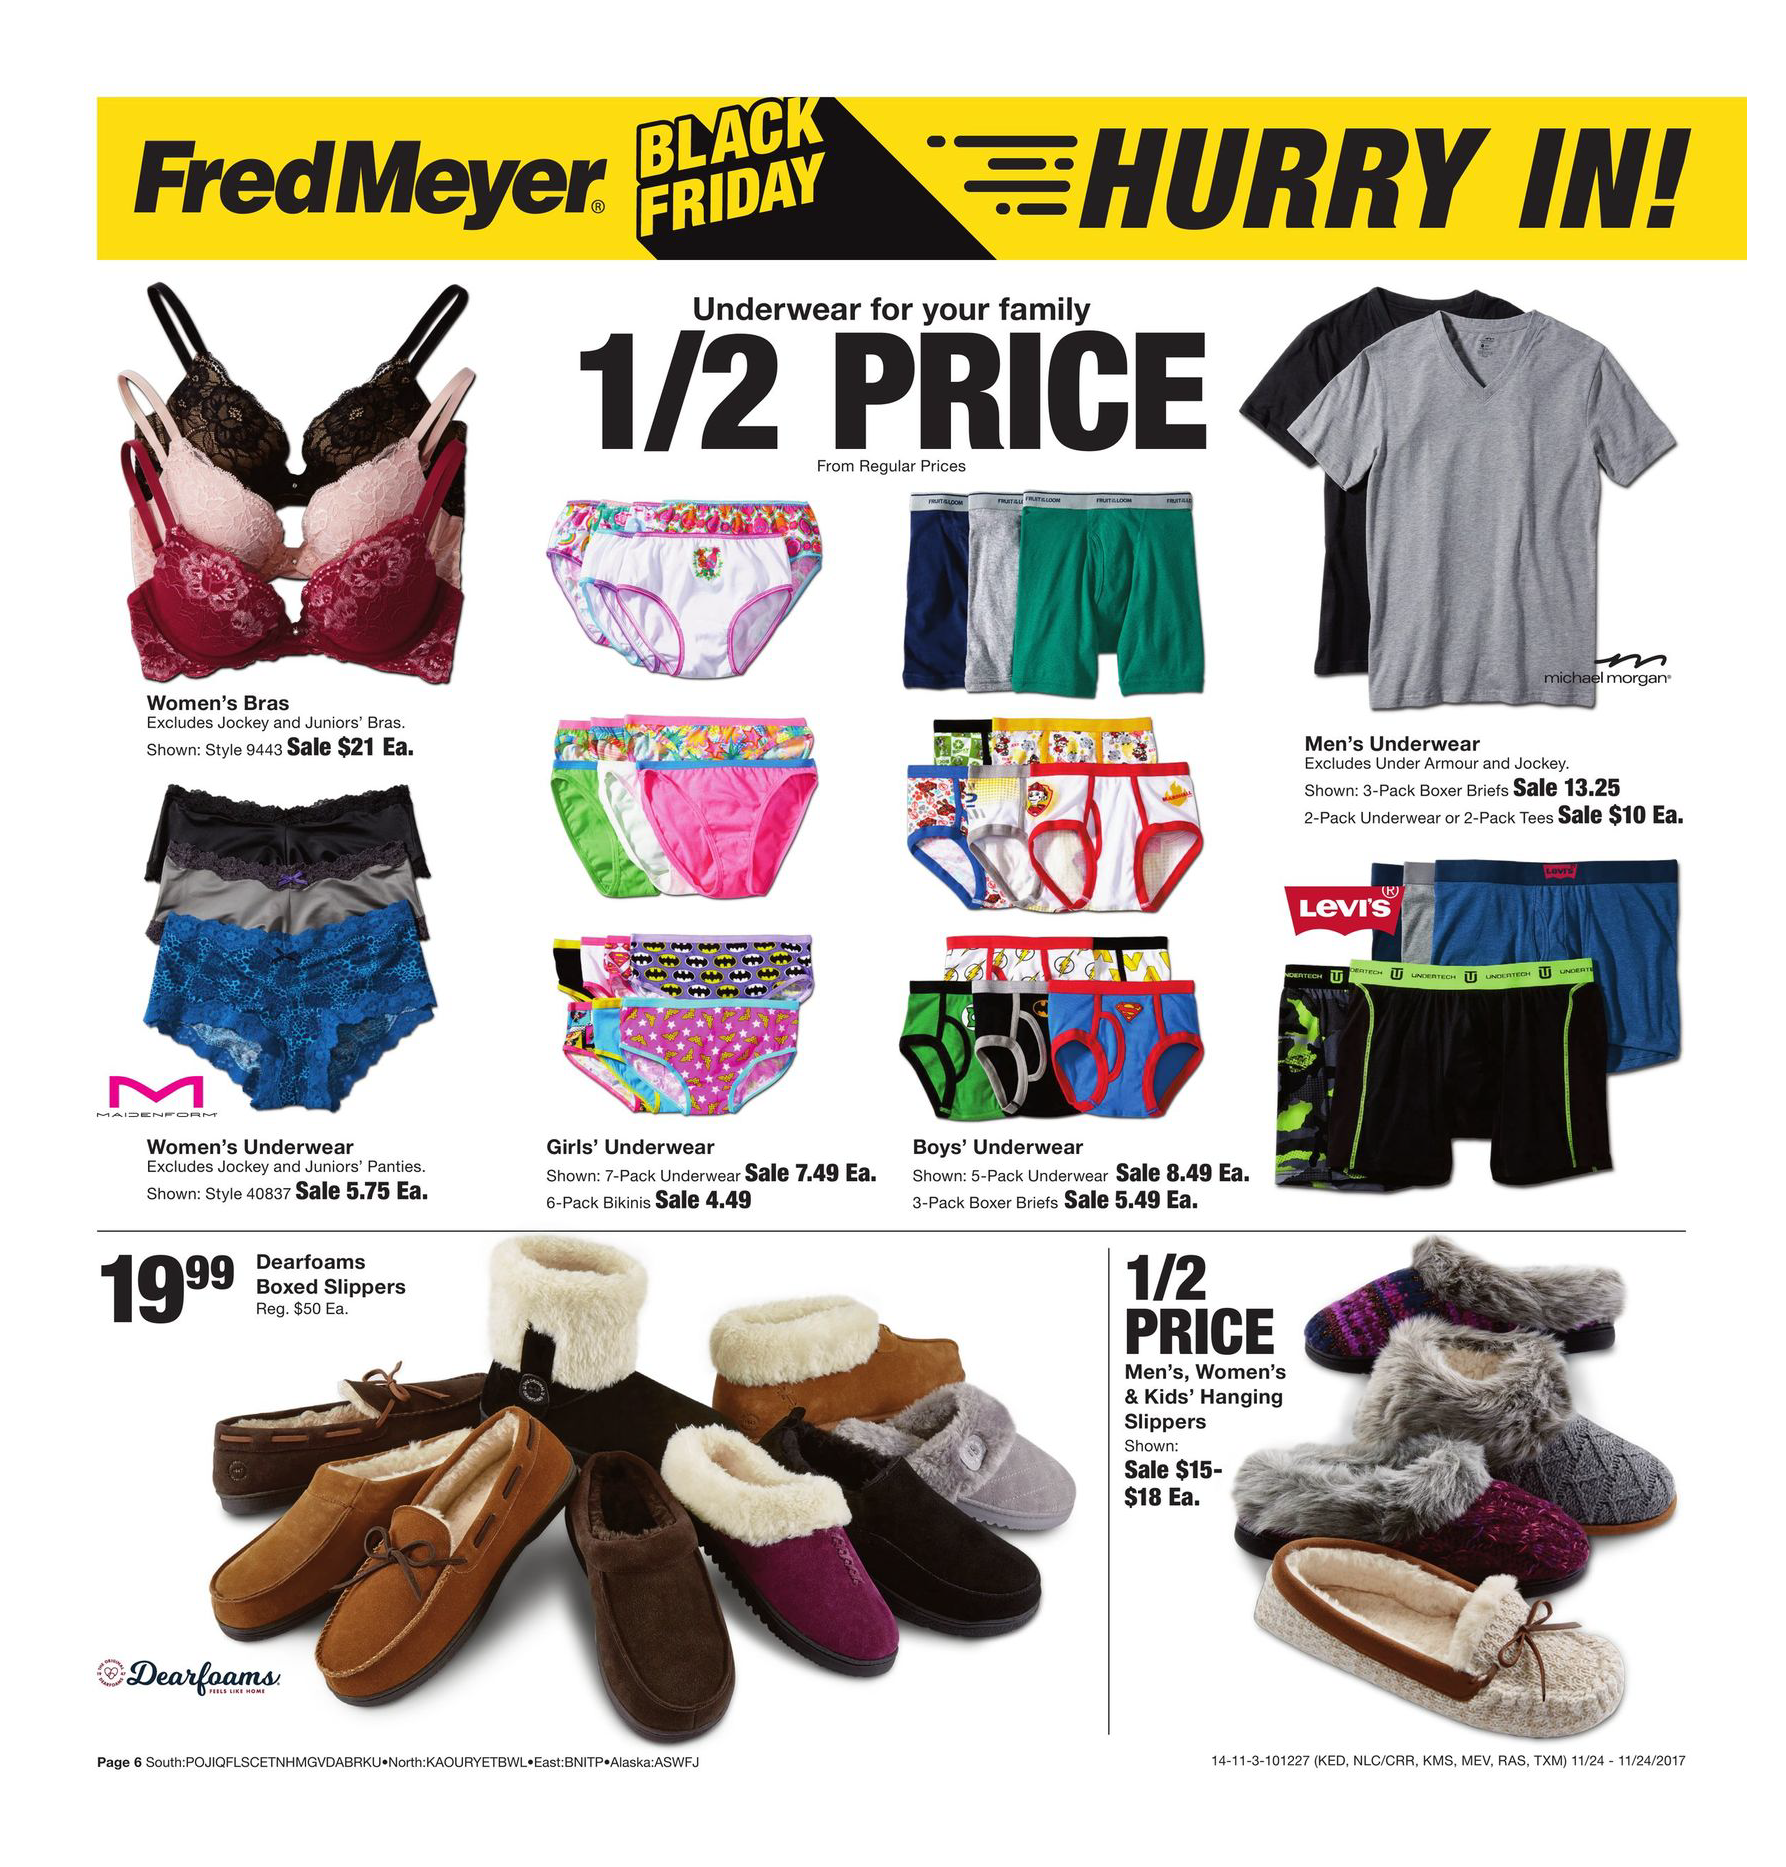 Fred Meyer Black Friday 2017 Ads and